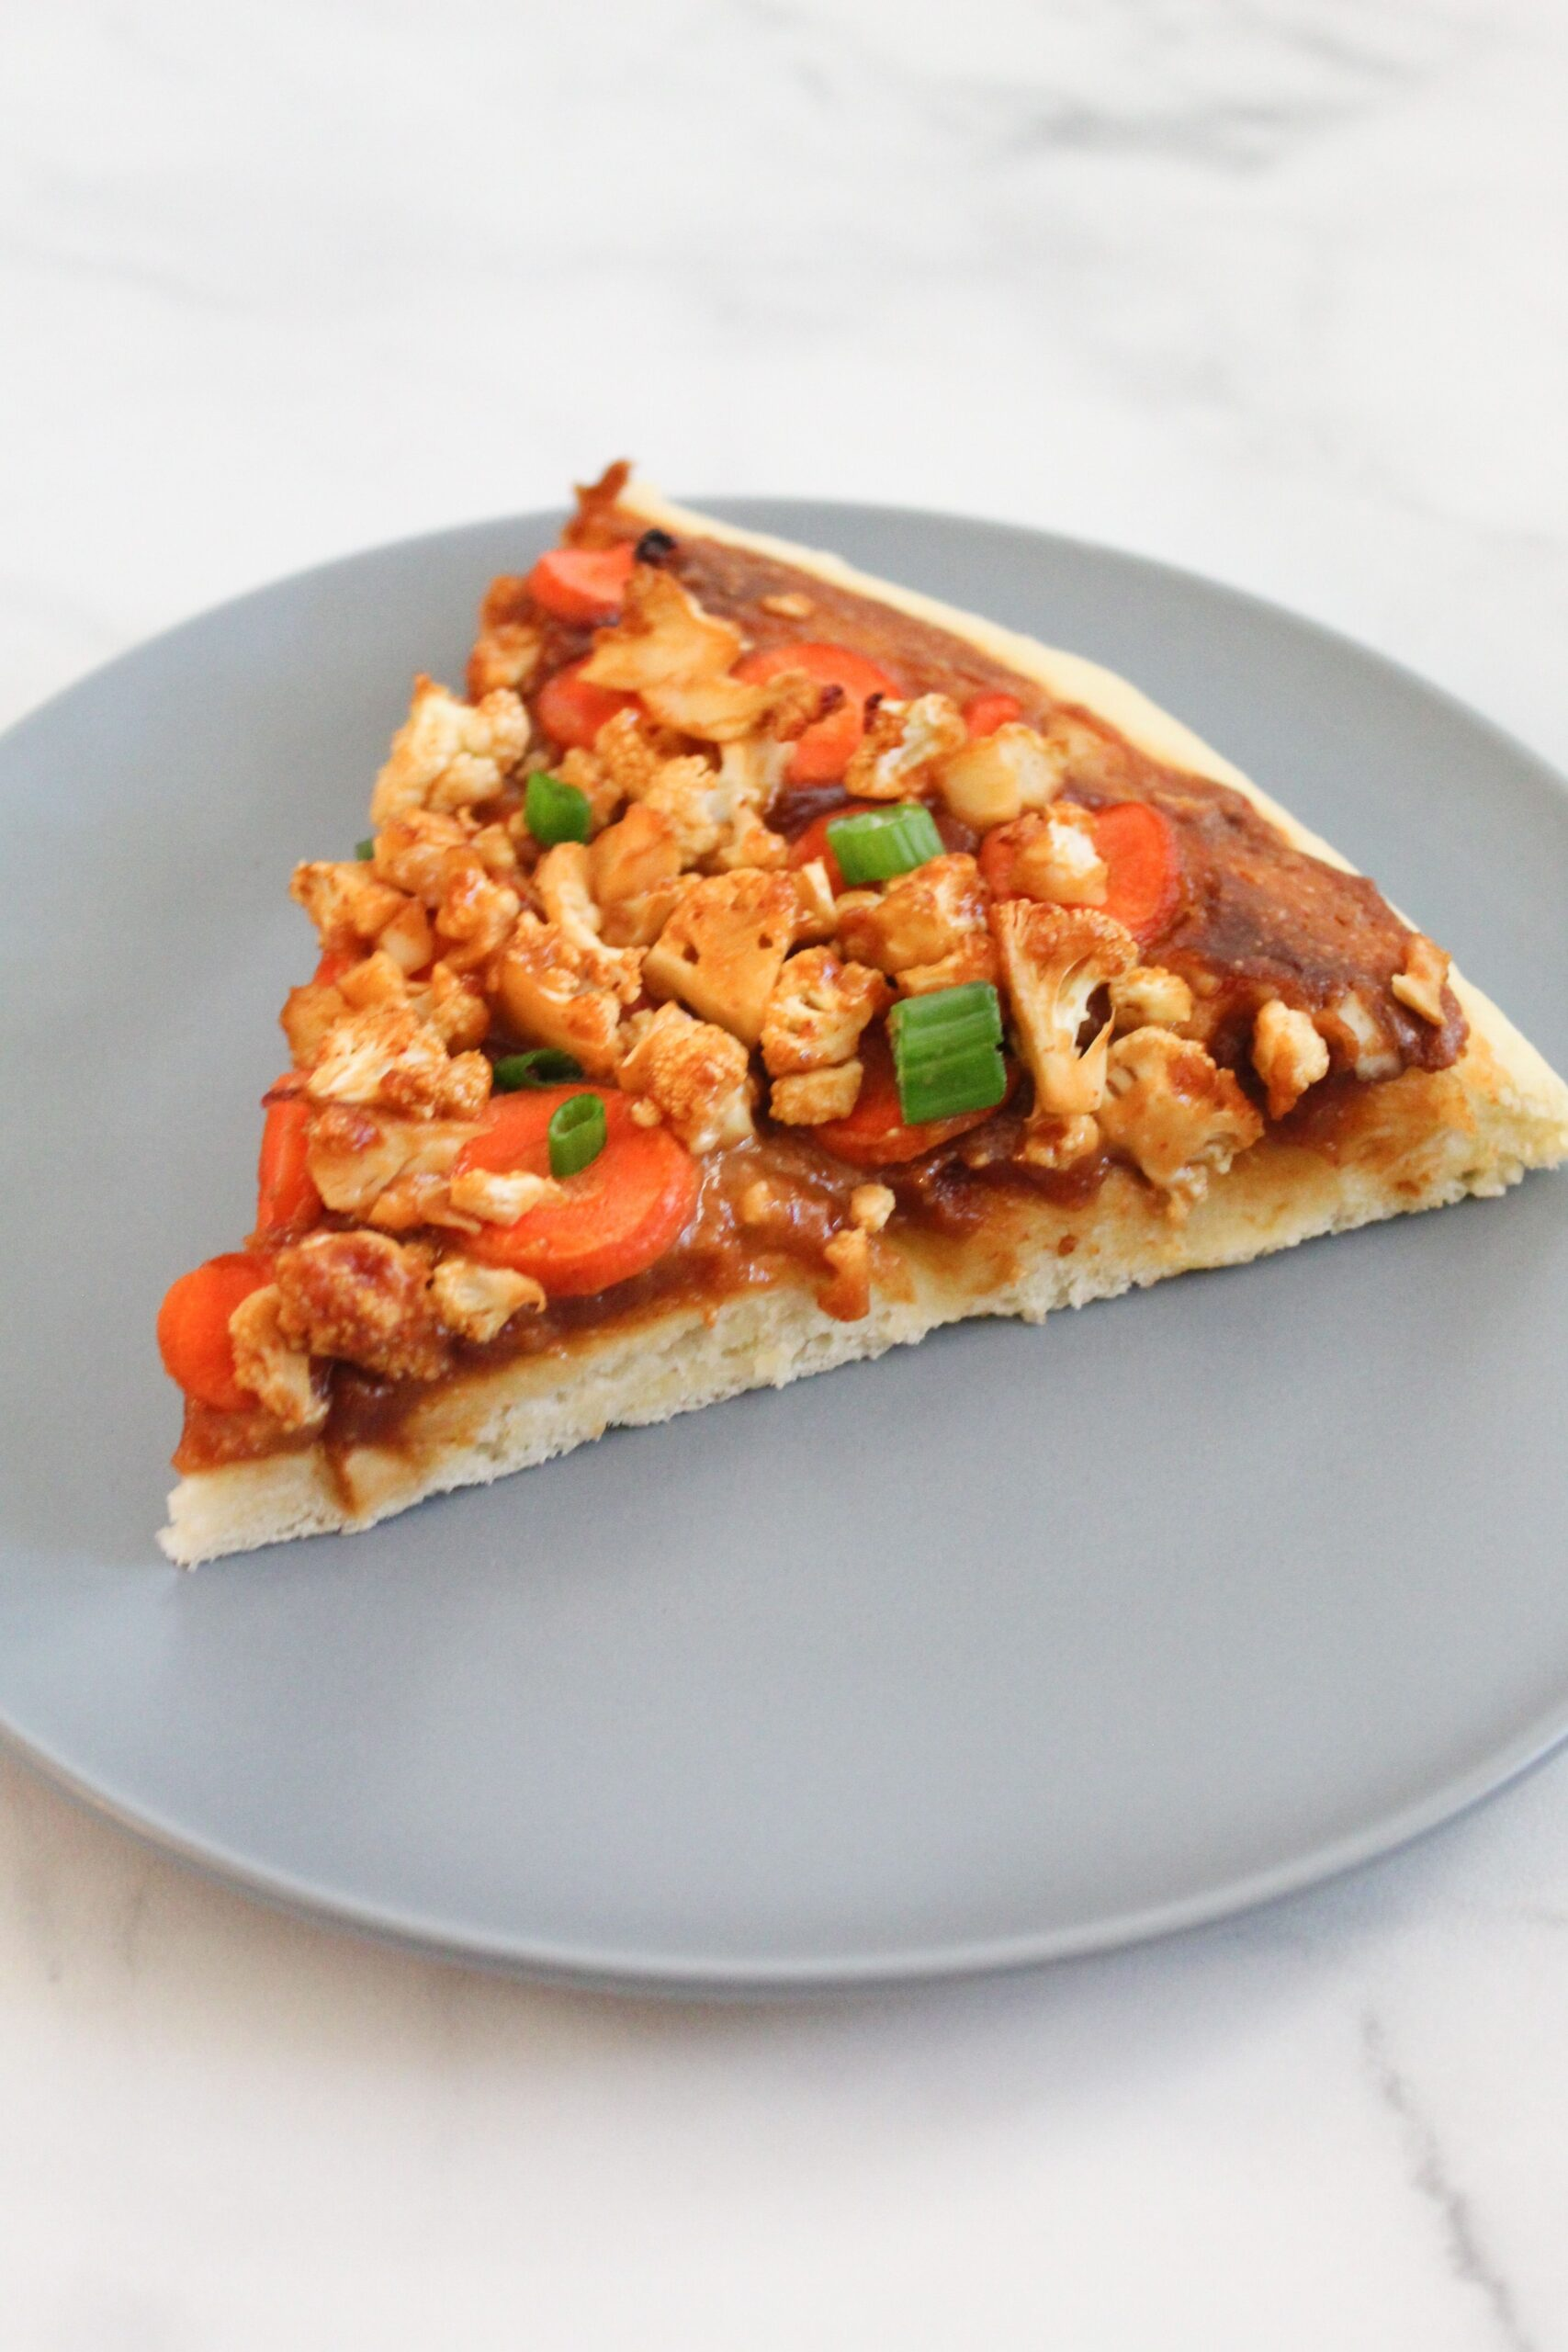 slice of finished thai pizza topped with green onions on blue plate